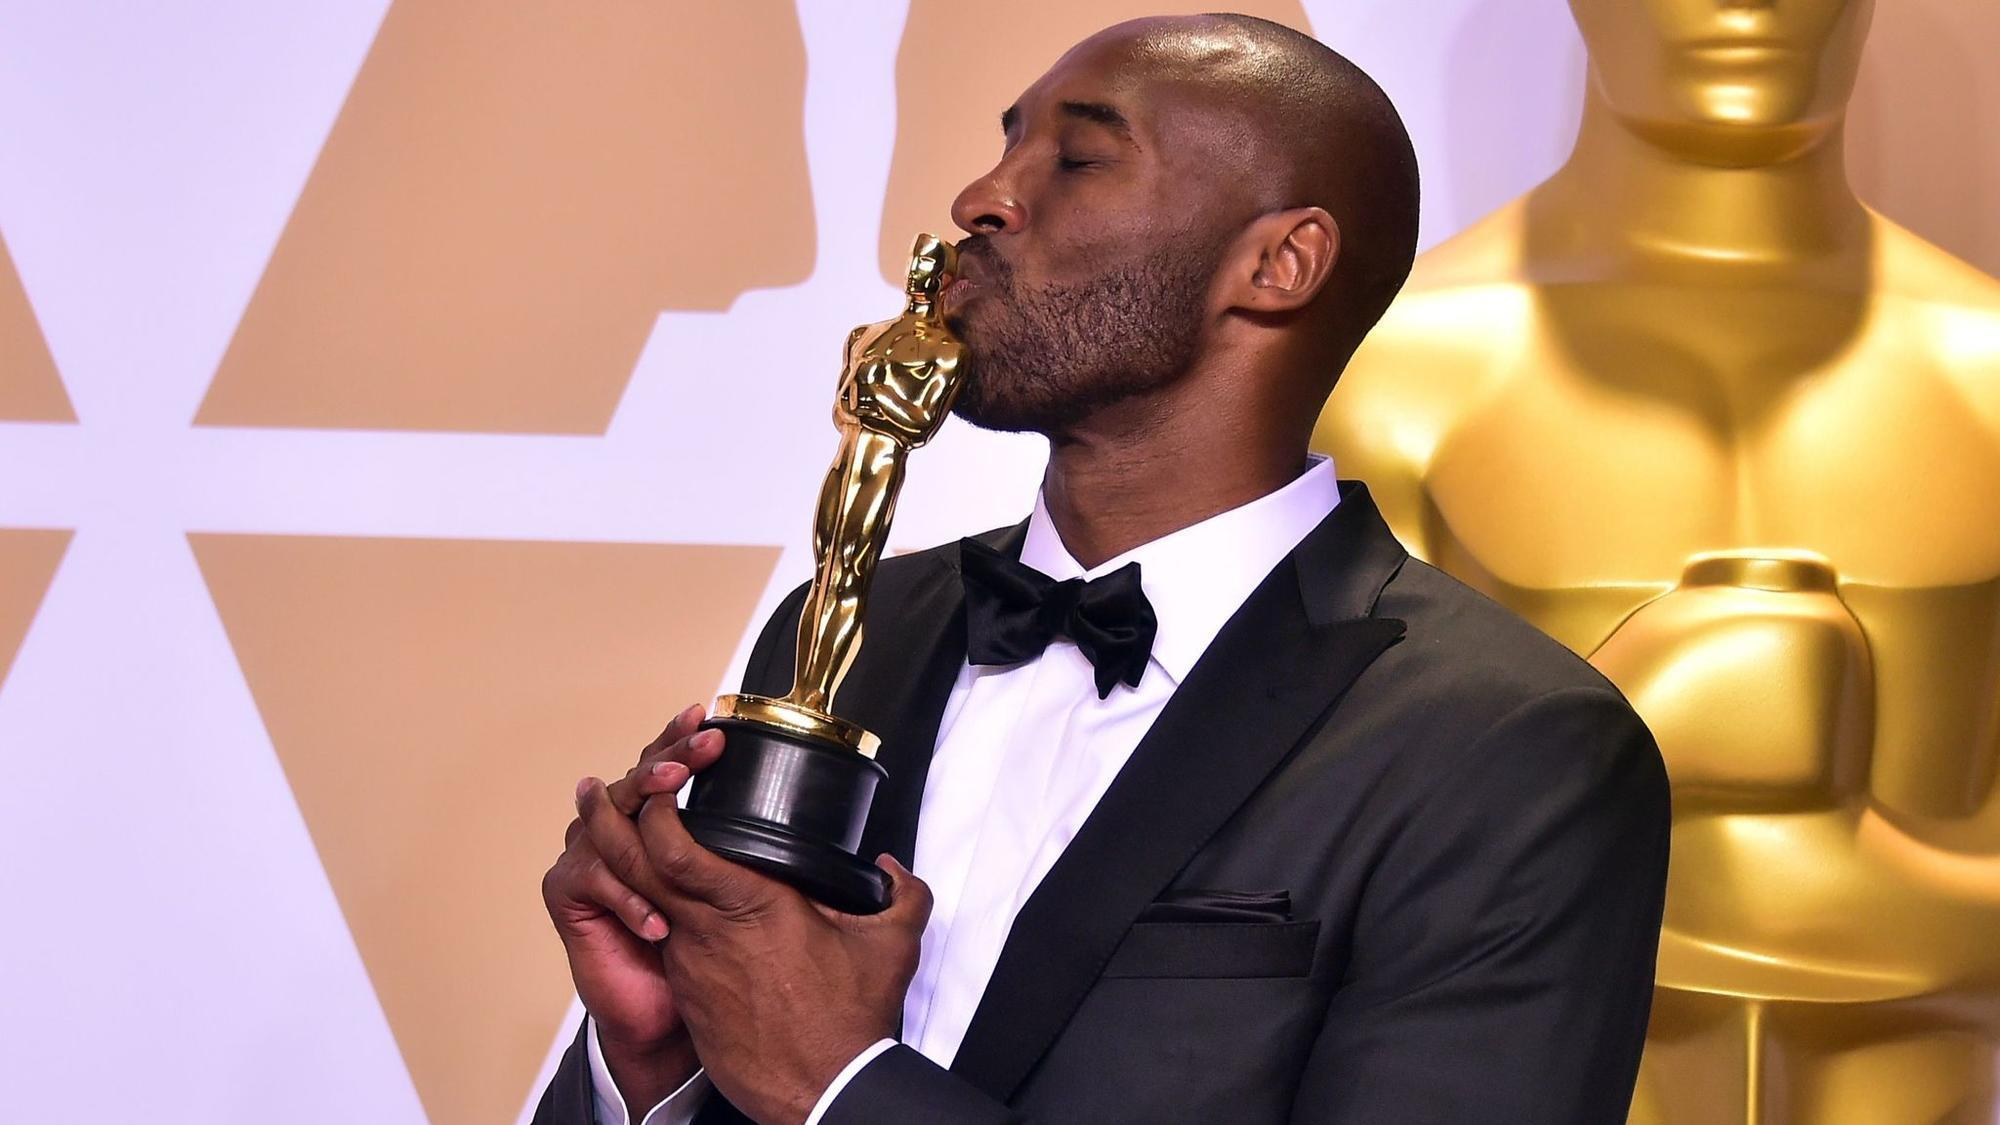 Kobe Bryant Cheered As Ryan Seacrest Is Shunned Despite Kobe Rape Case